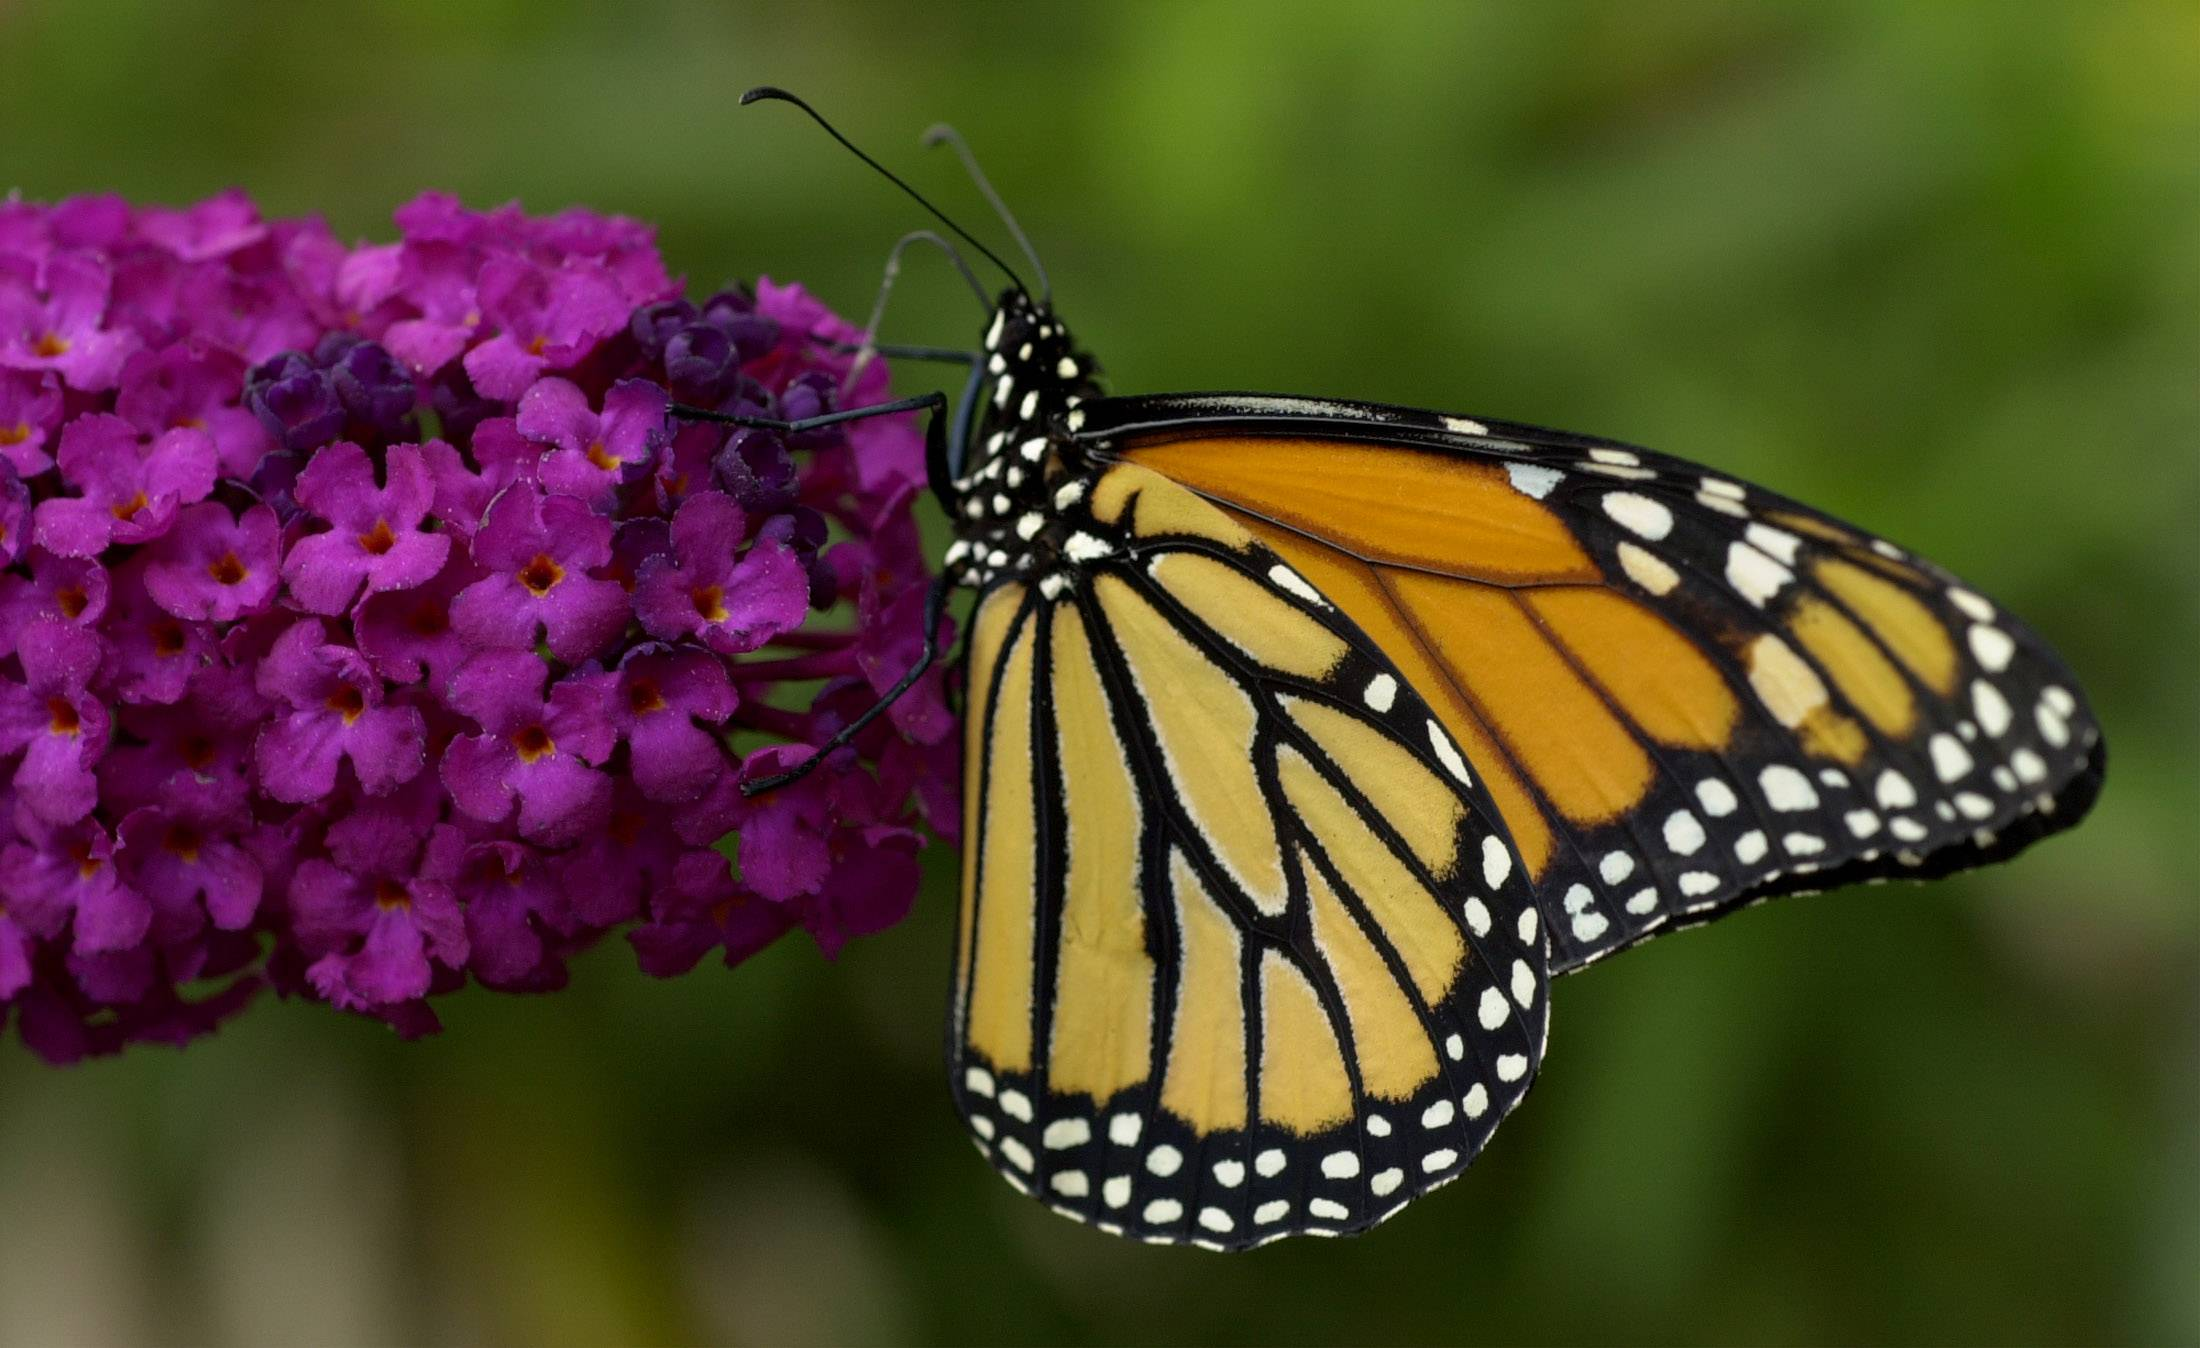 State researchers say the Monarch butterfly population is at its fourth highest level since 1993 as migration peaks in Illinois.